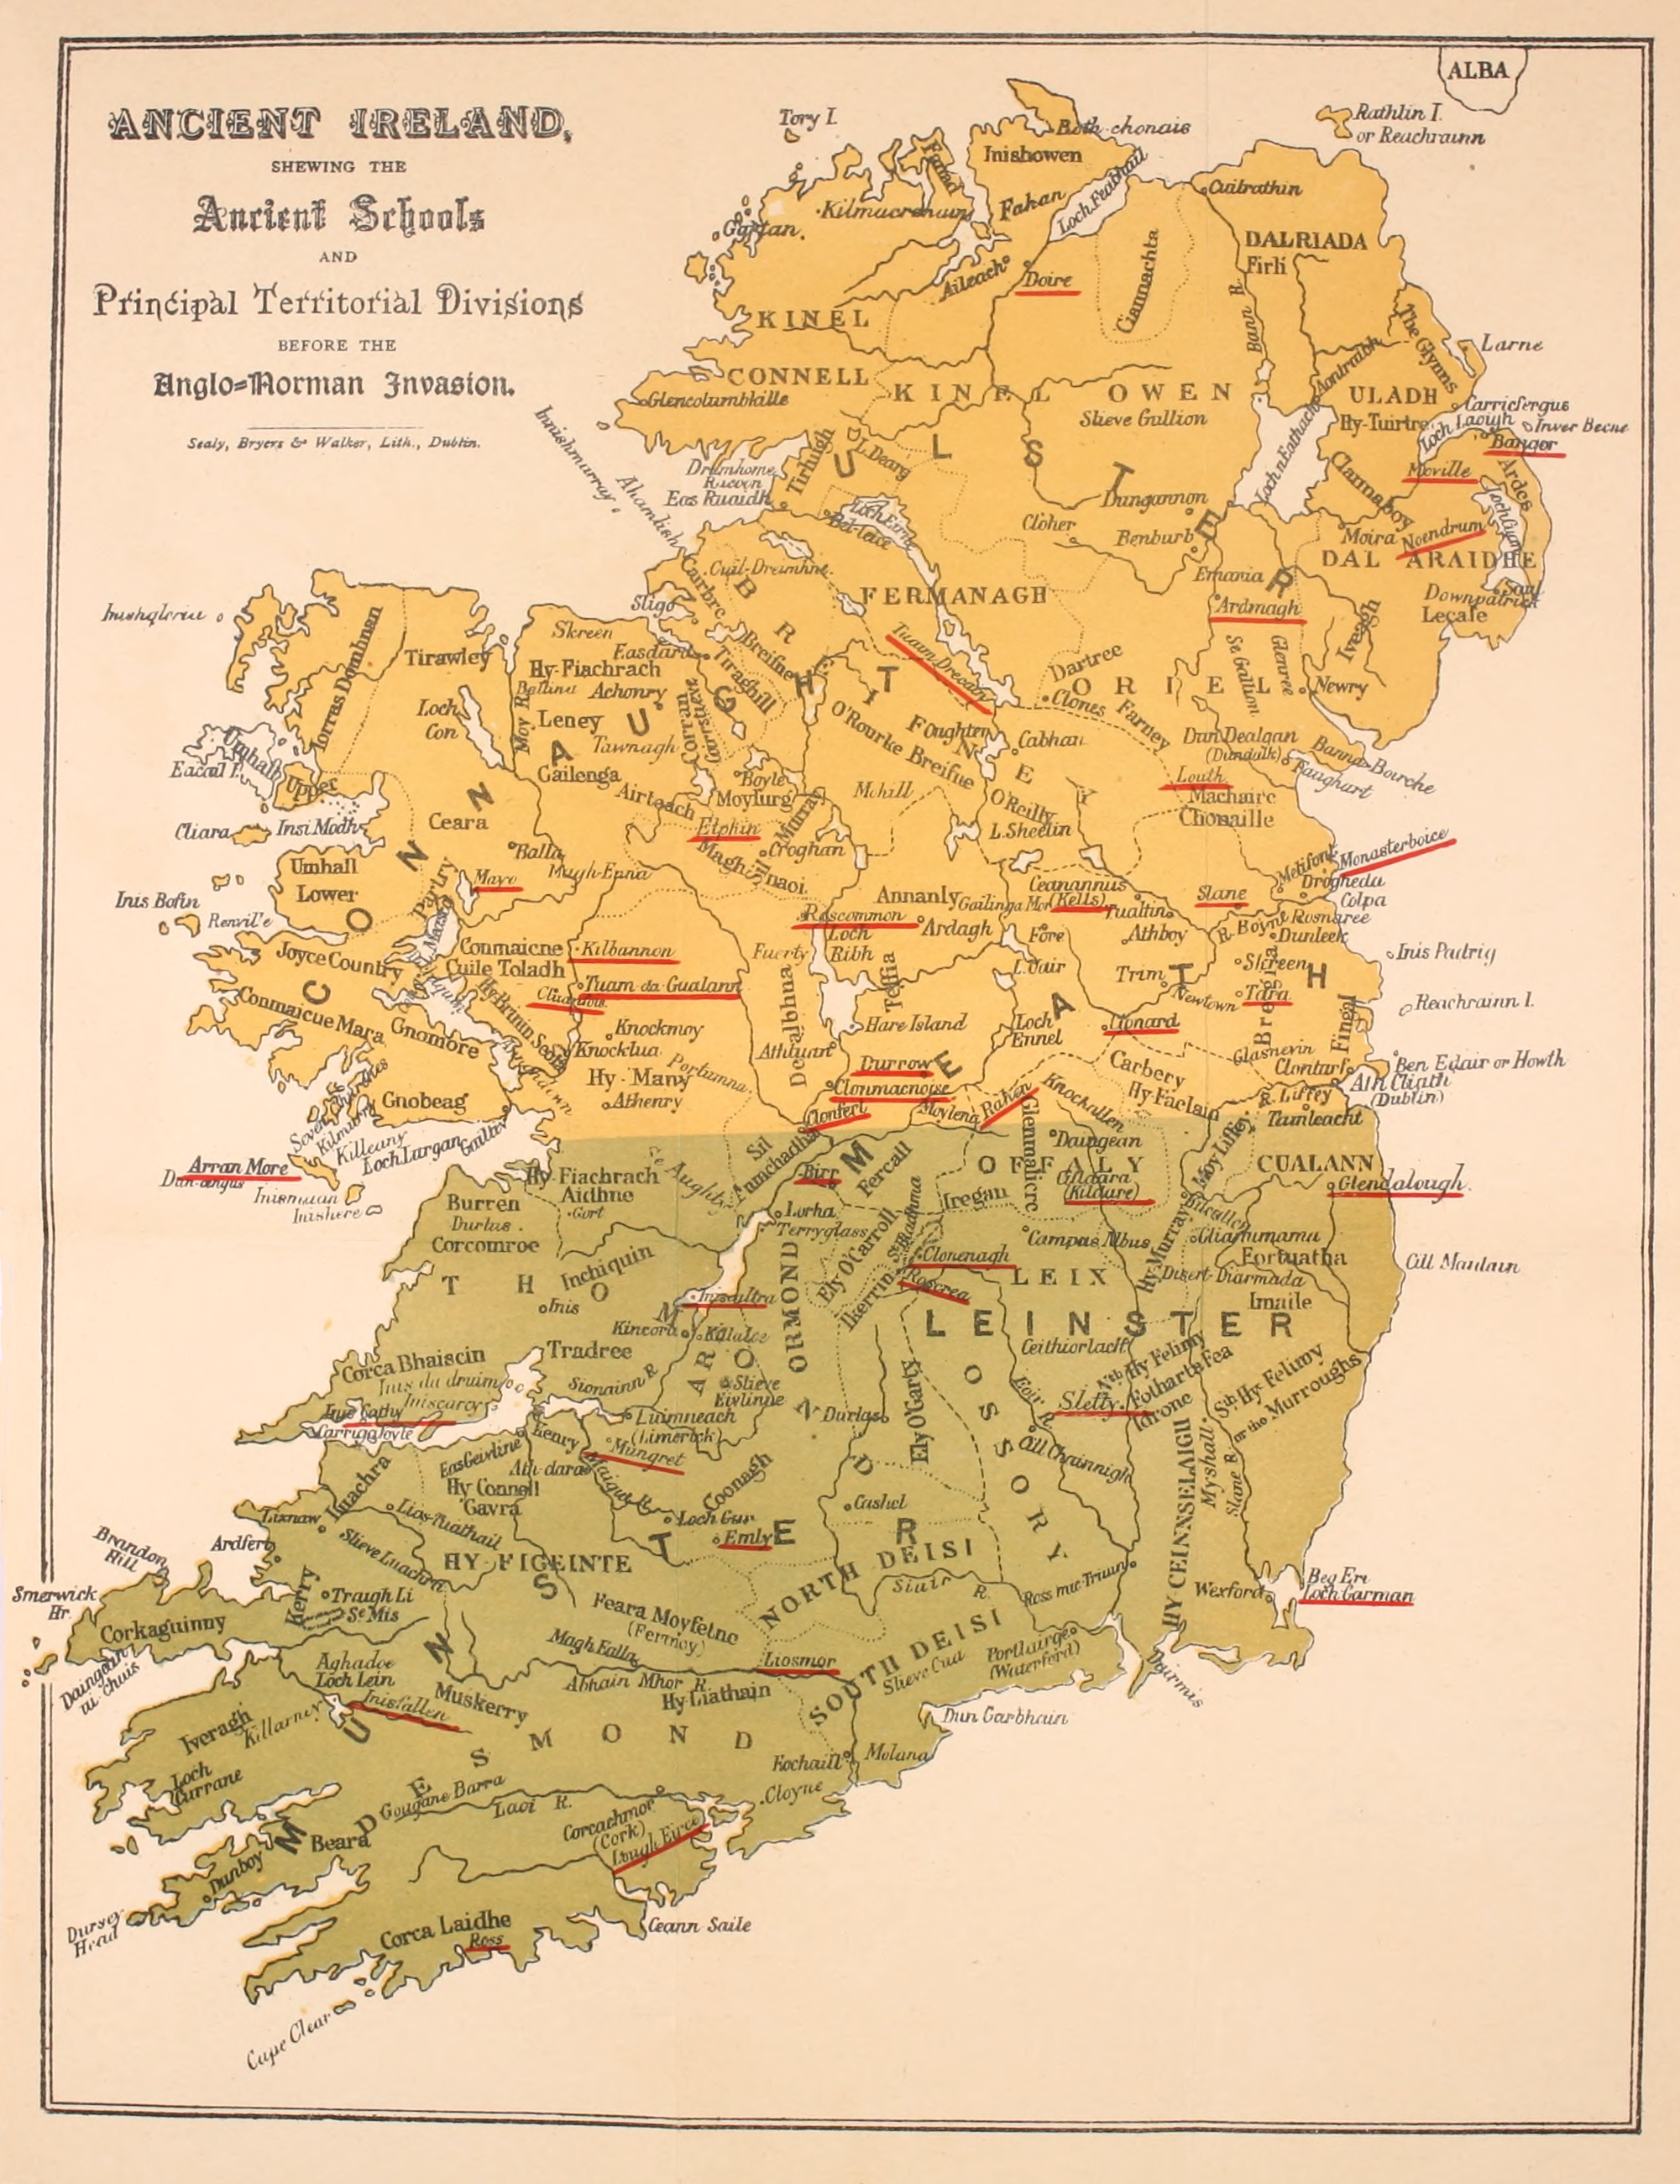 Ancient Map Of Ireland.File Pre Anglo Norma Invasion Irish Ancient Schools Map Jpg